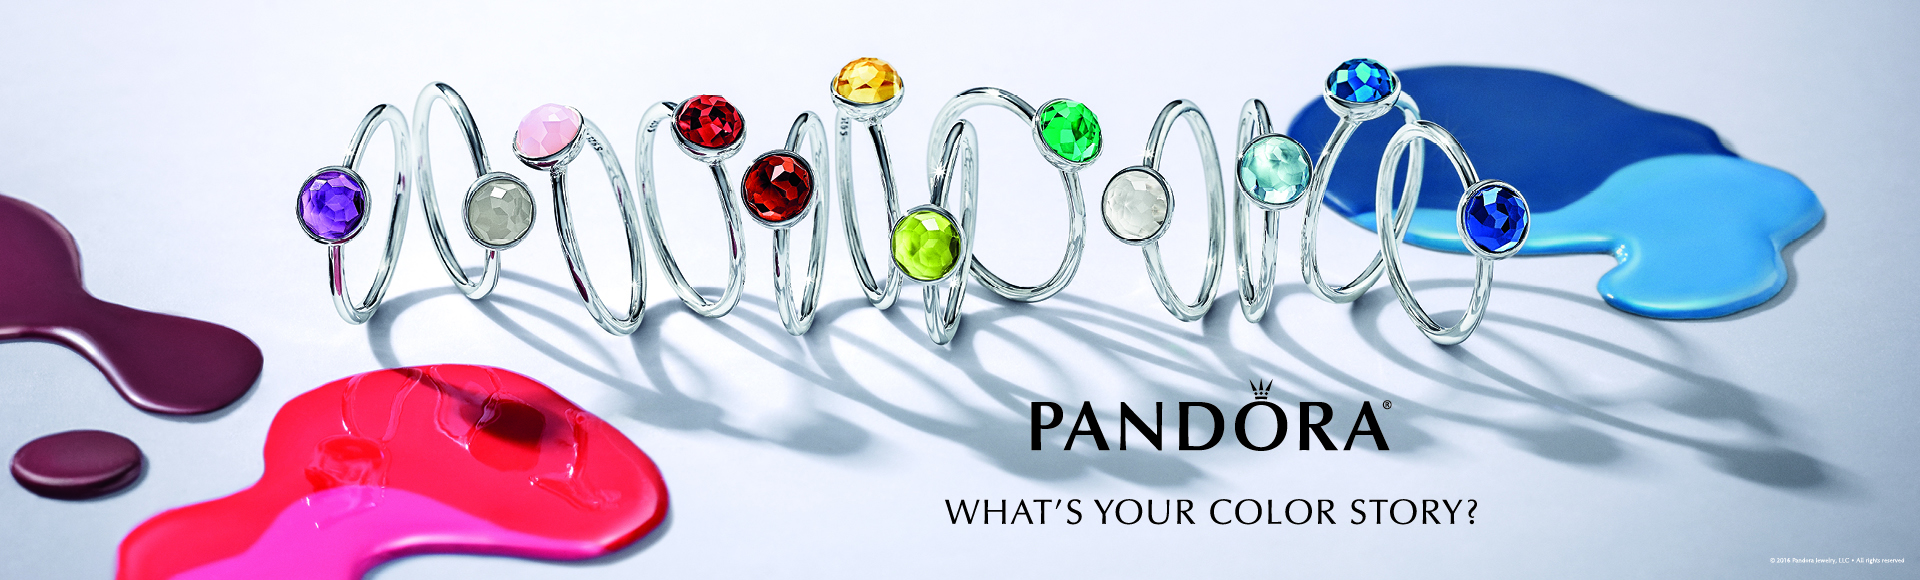 Pandora - What's Your Color Story?